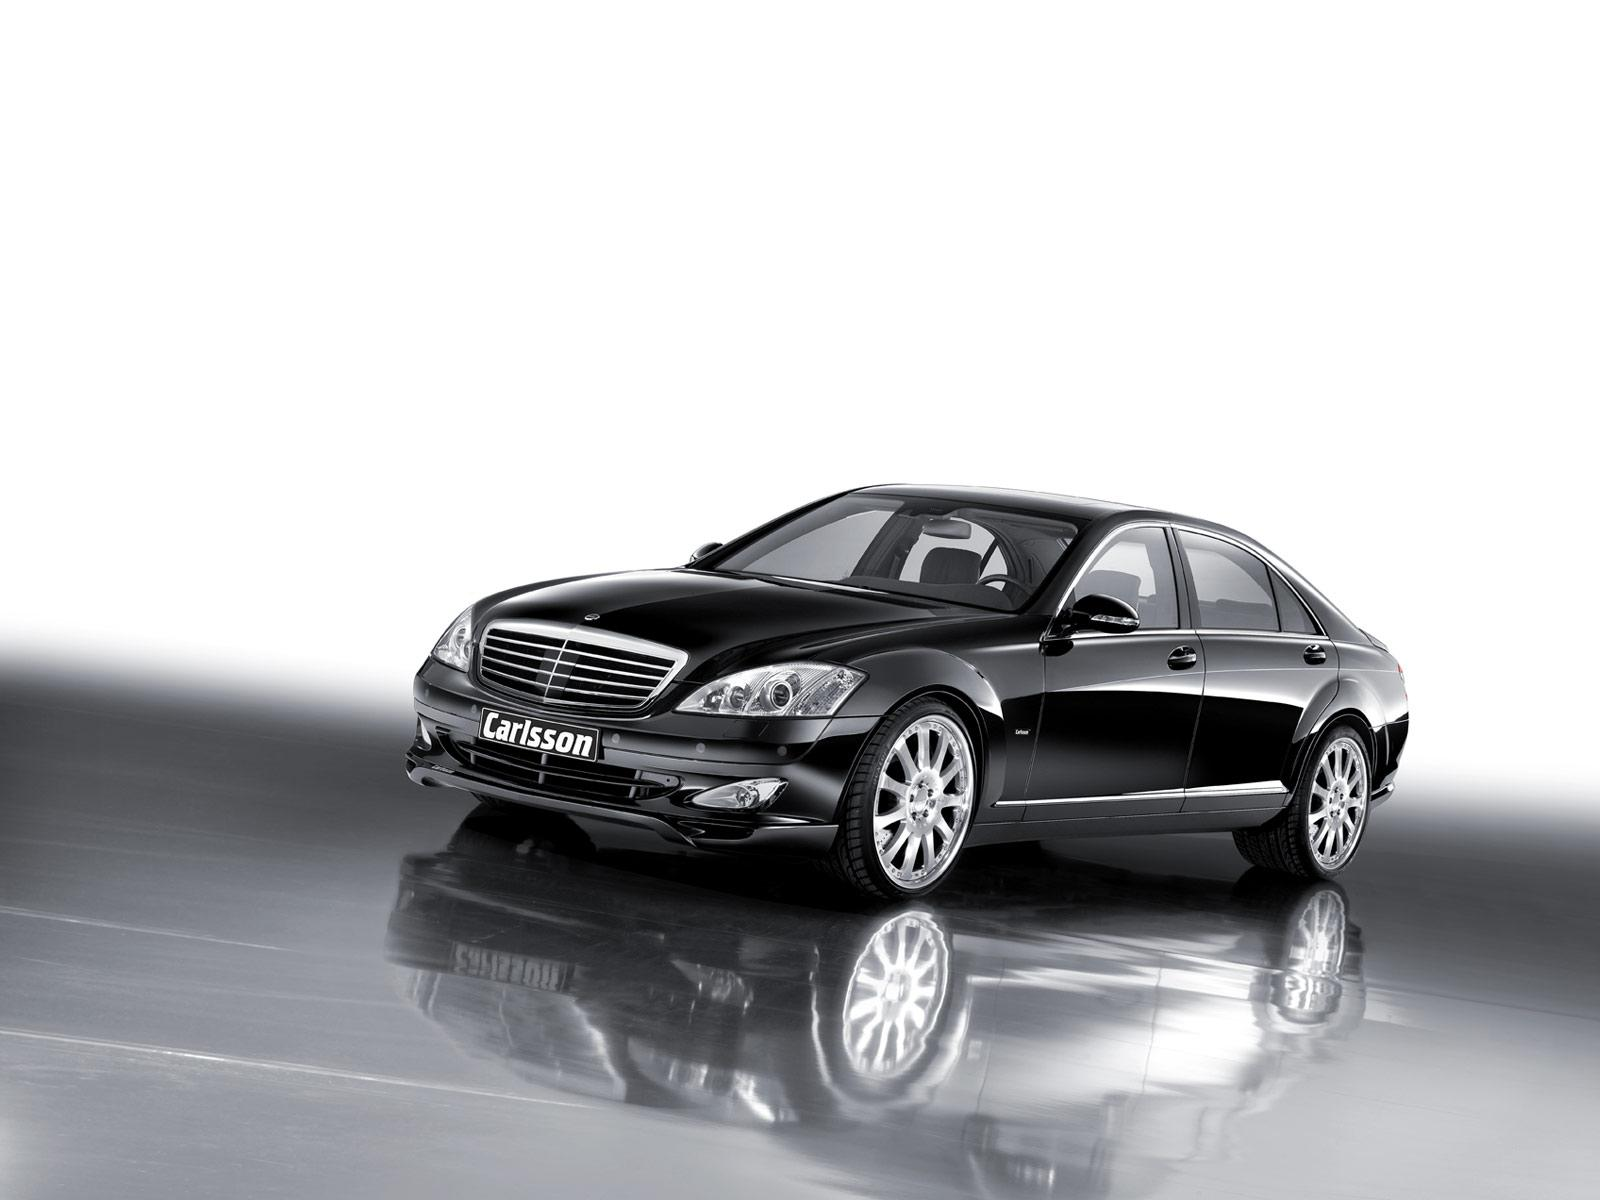 Обои Front Mercedes-Benz S500 Carlsson 1600x1200